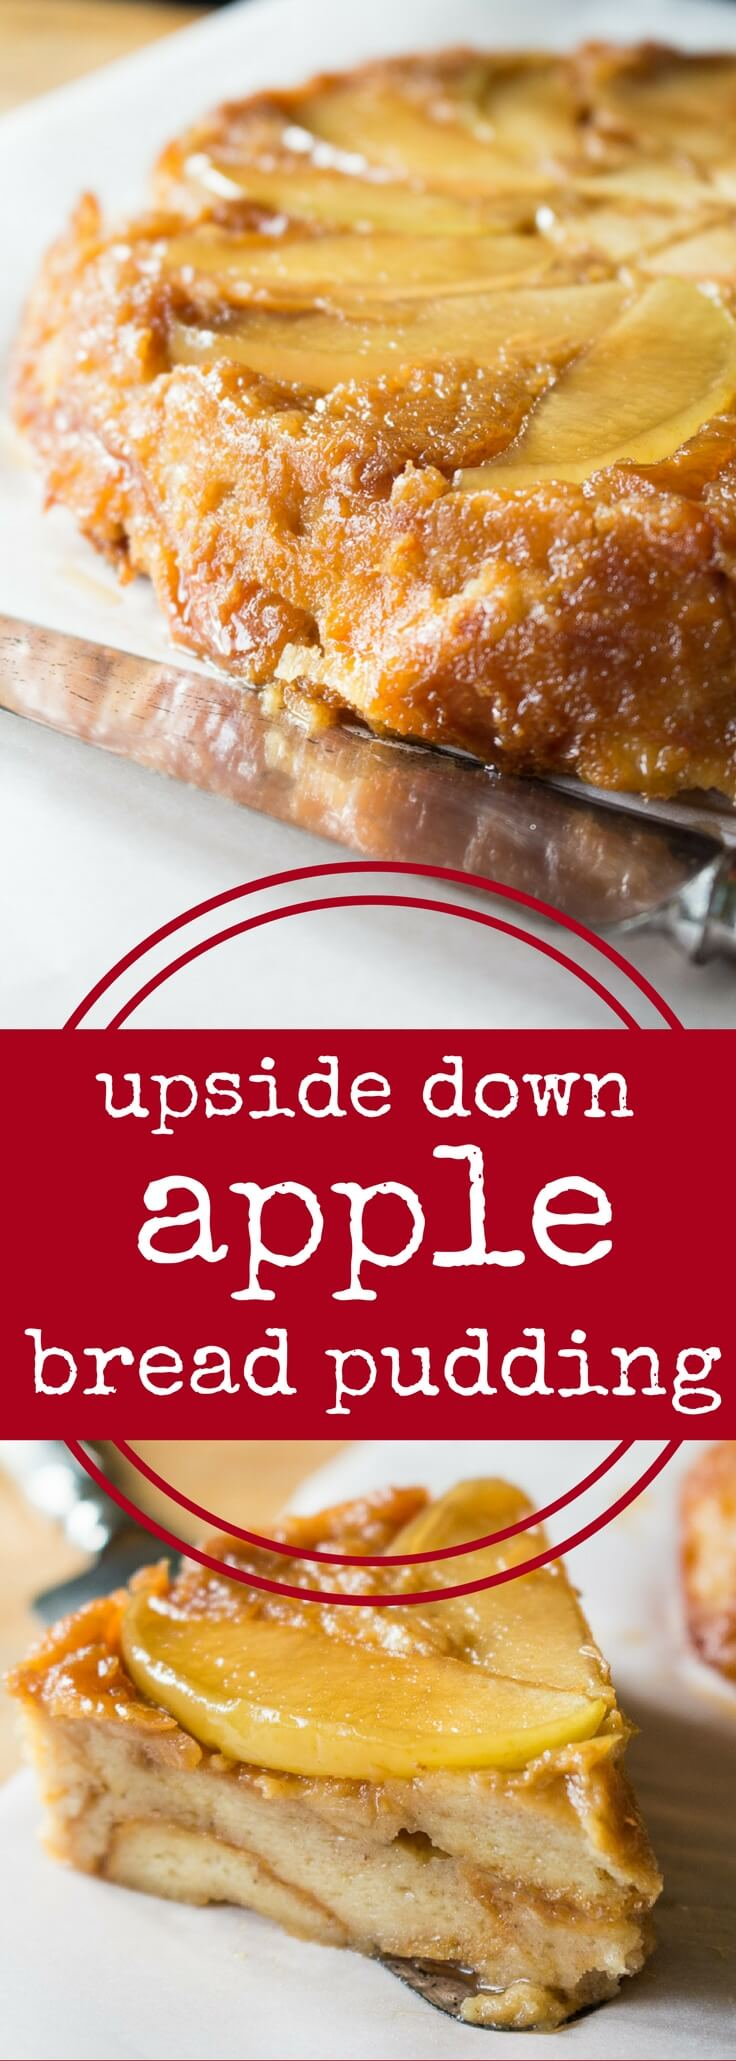 Upside down apple bread pudding creates a beautiful pattern of sliced apples on your bread pudding.  Easy to make, with just a few simple ingredients.